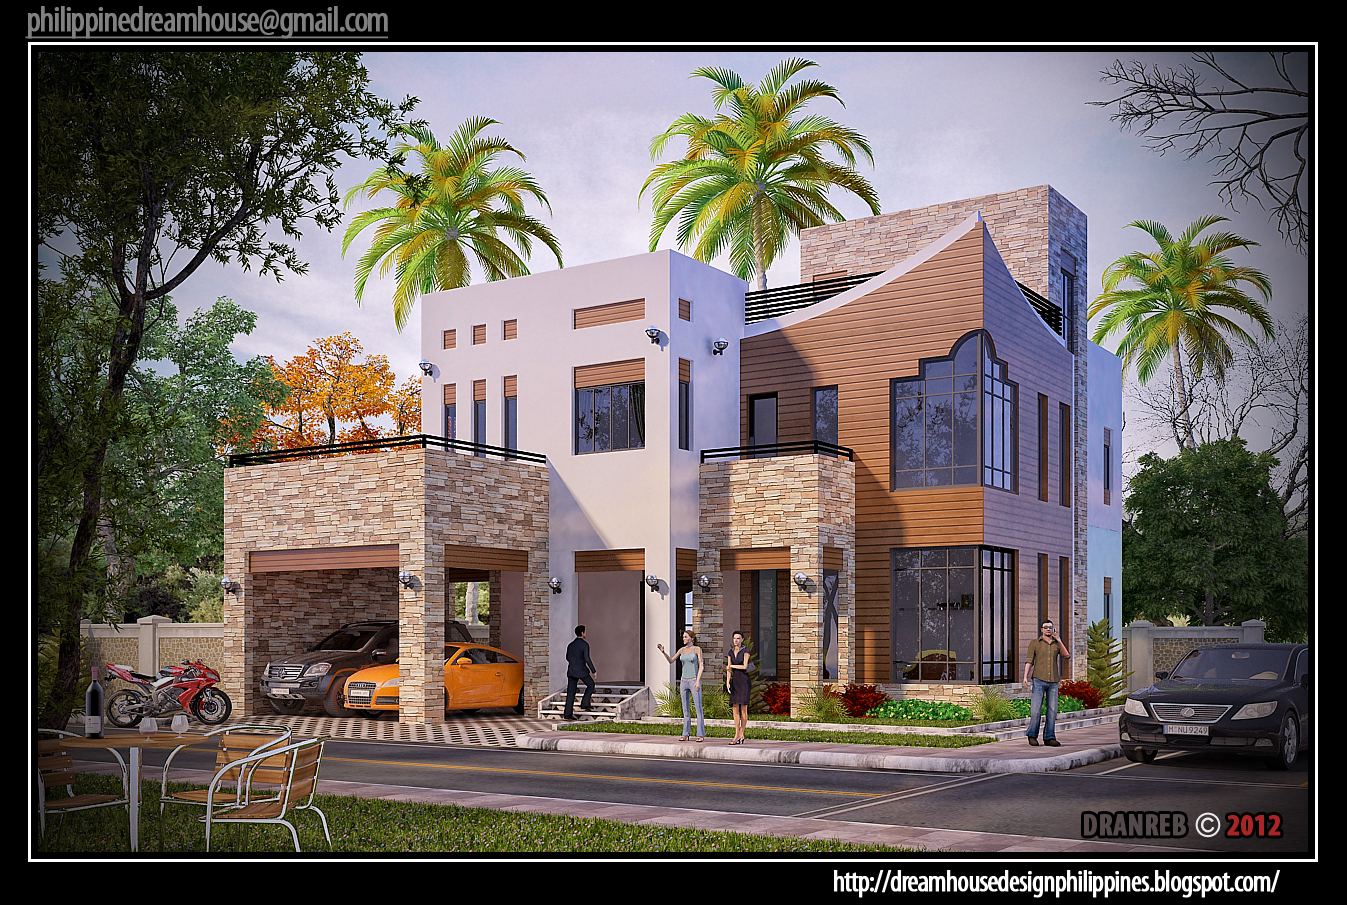 Philippine dream house design two storey house in cebu for Best house designs